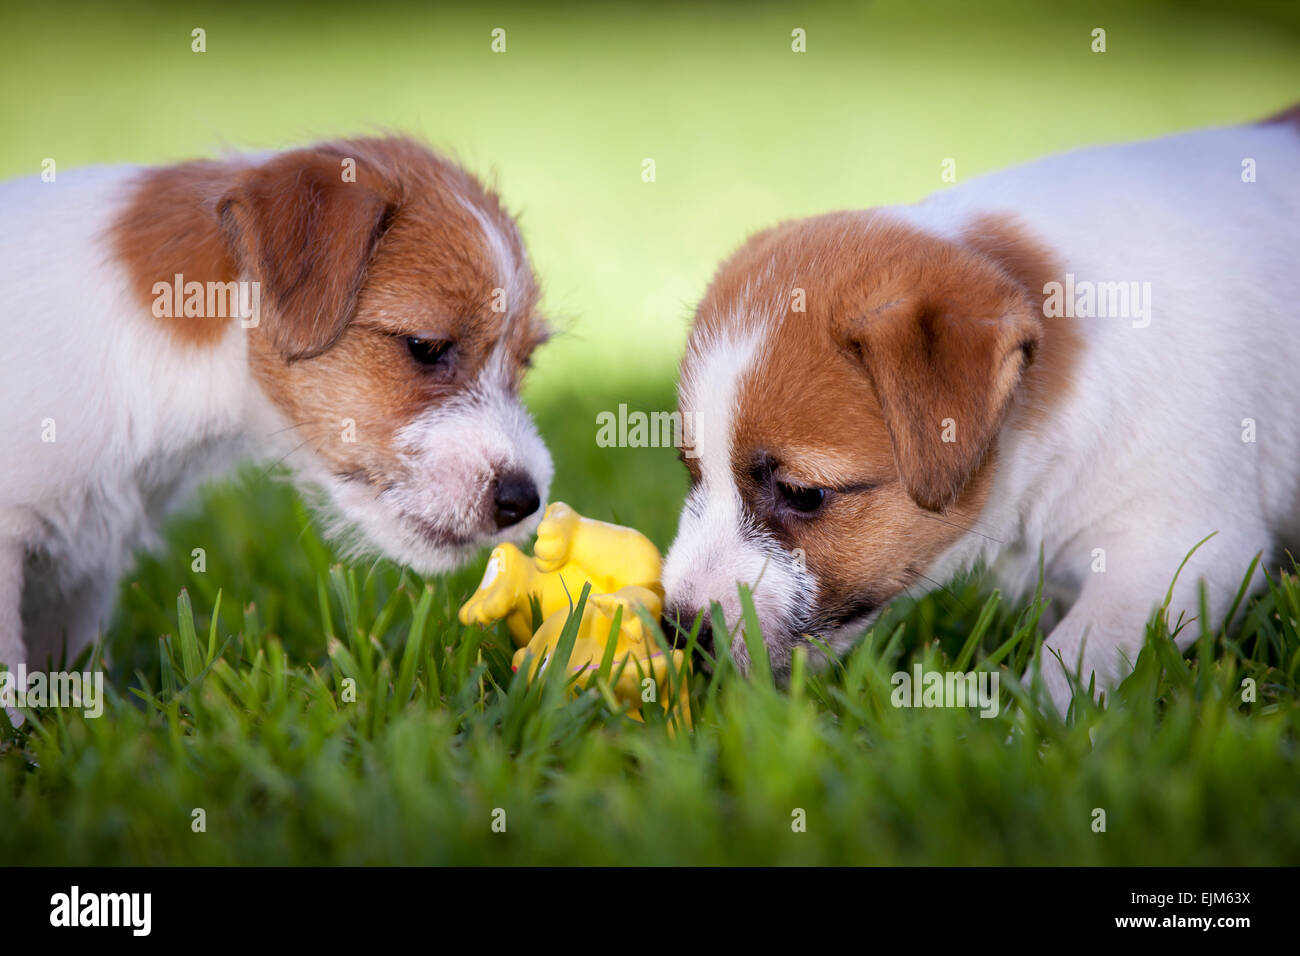 Jack Russell Terrier puppies playing with a yellow toy Stock